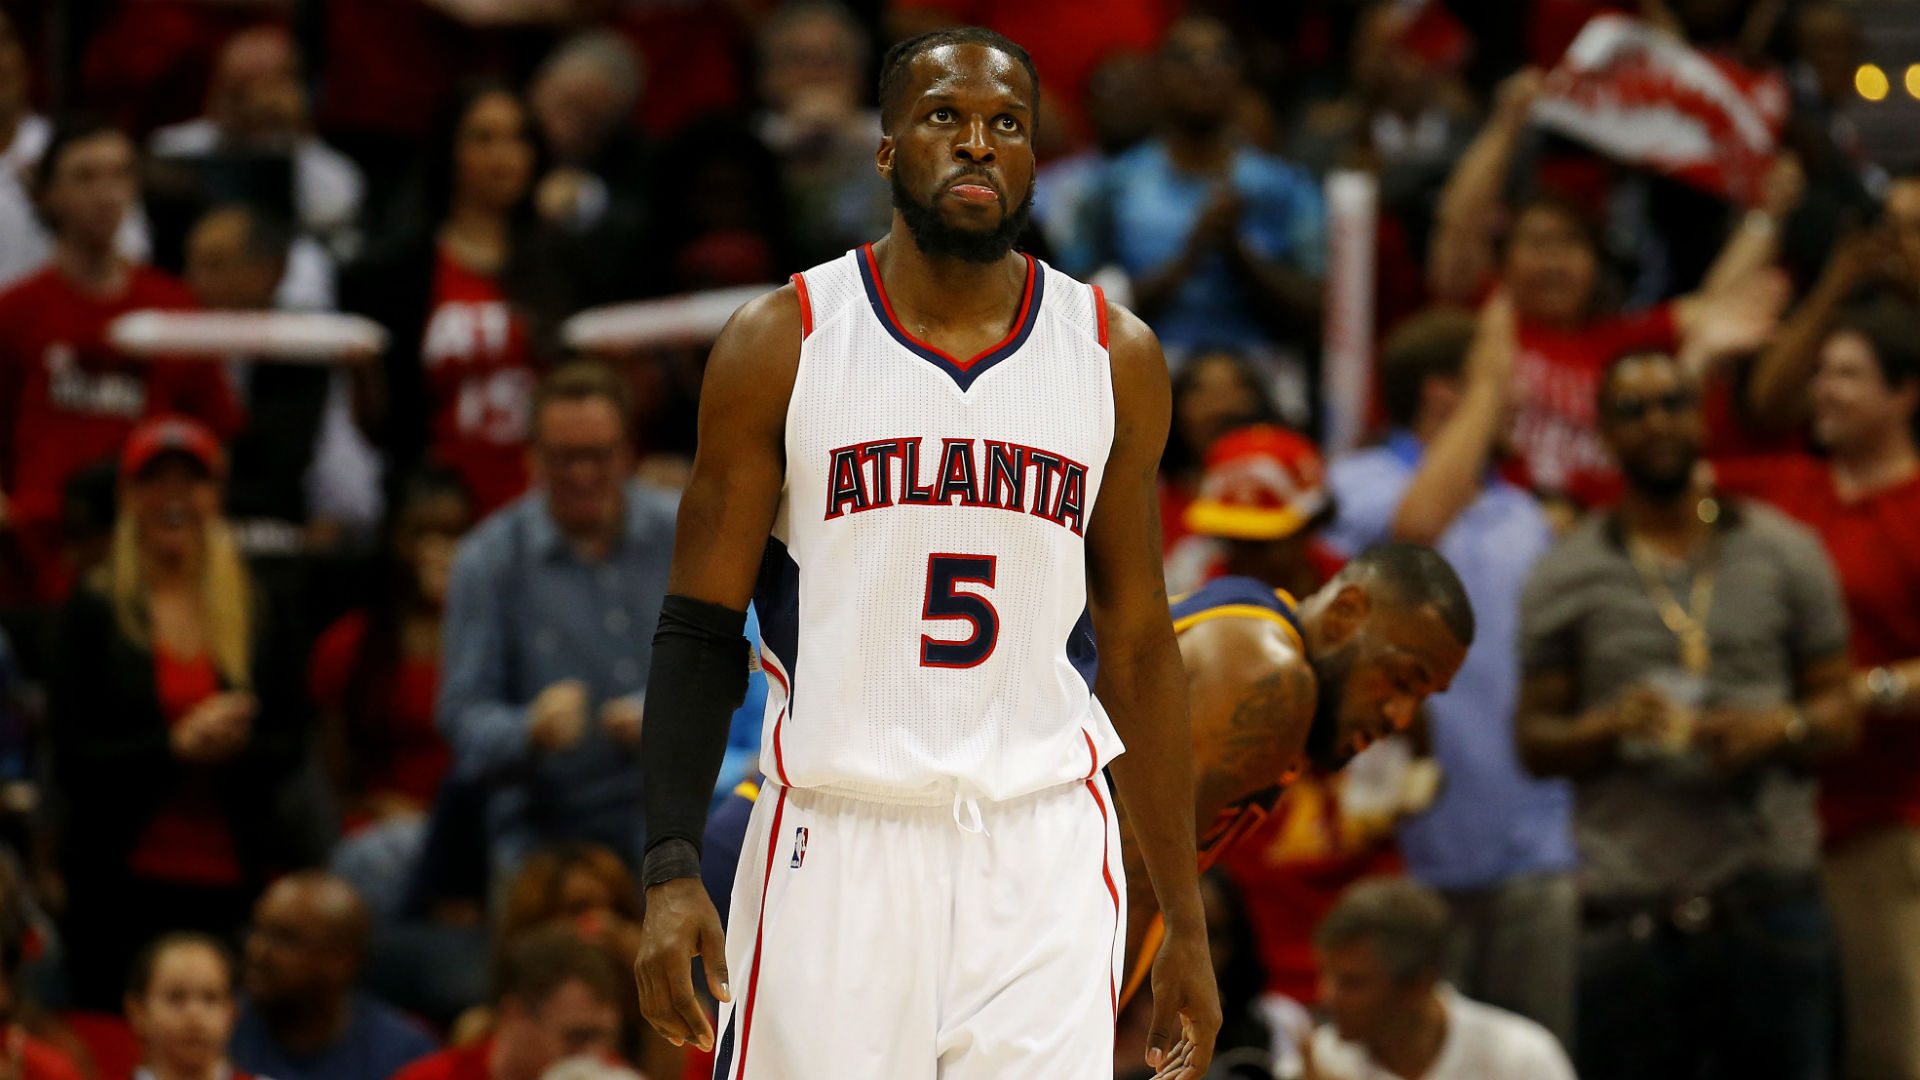 DeMarre Carroll to sign $60 million deal with Raptors